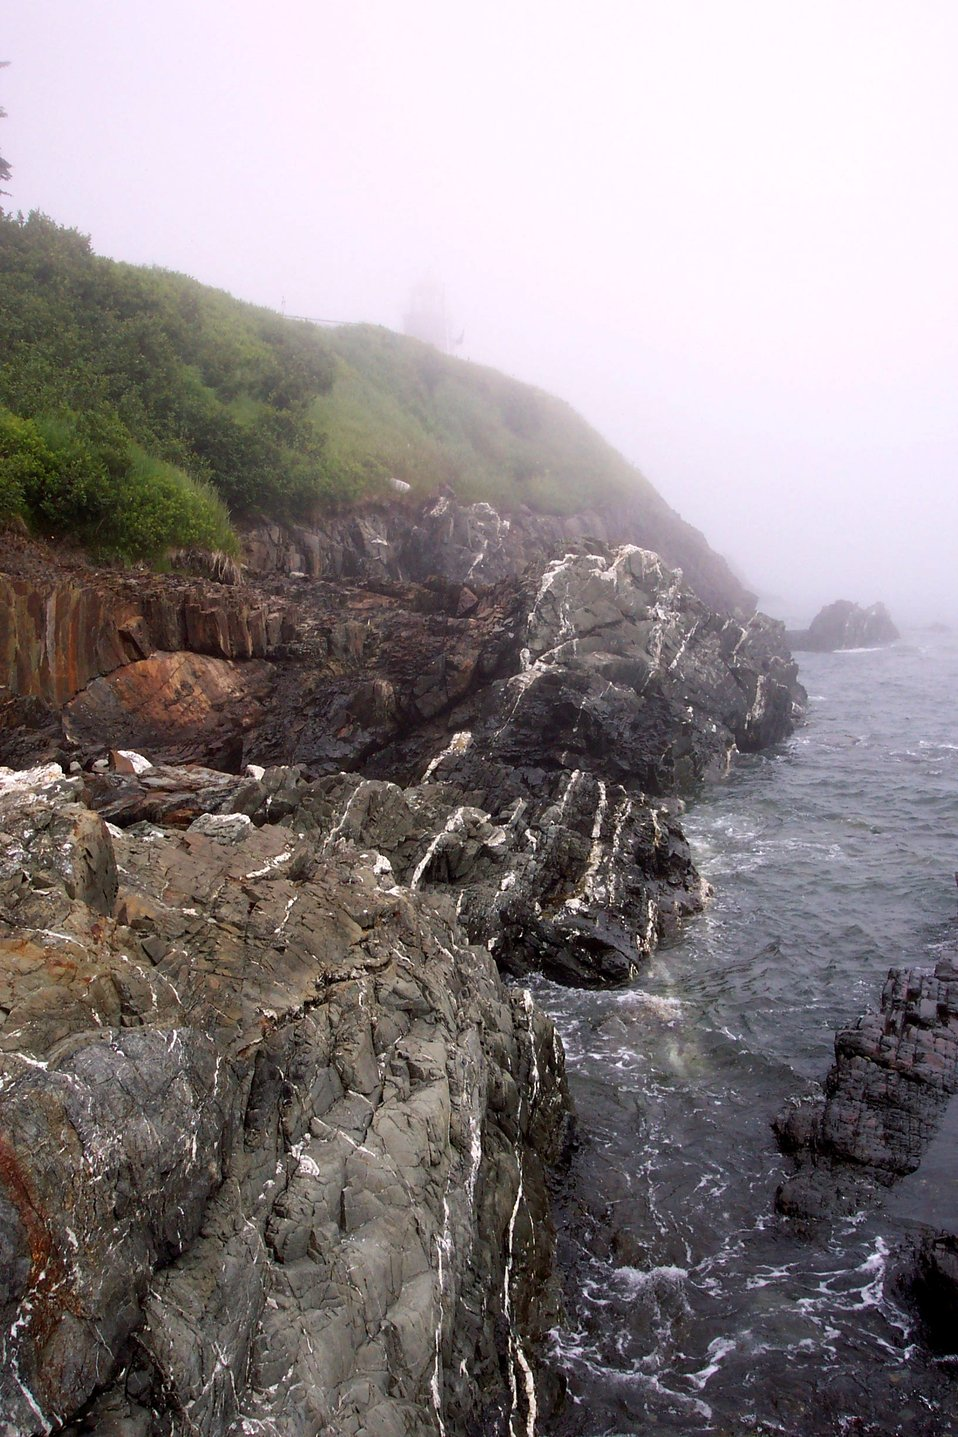 Quartz-veined metamorphic rocks meet the sea below a fog-shrouded lighthouse at West Quoddy Head.